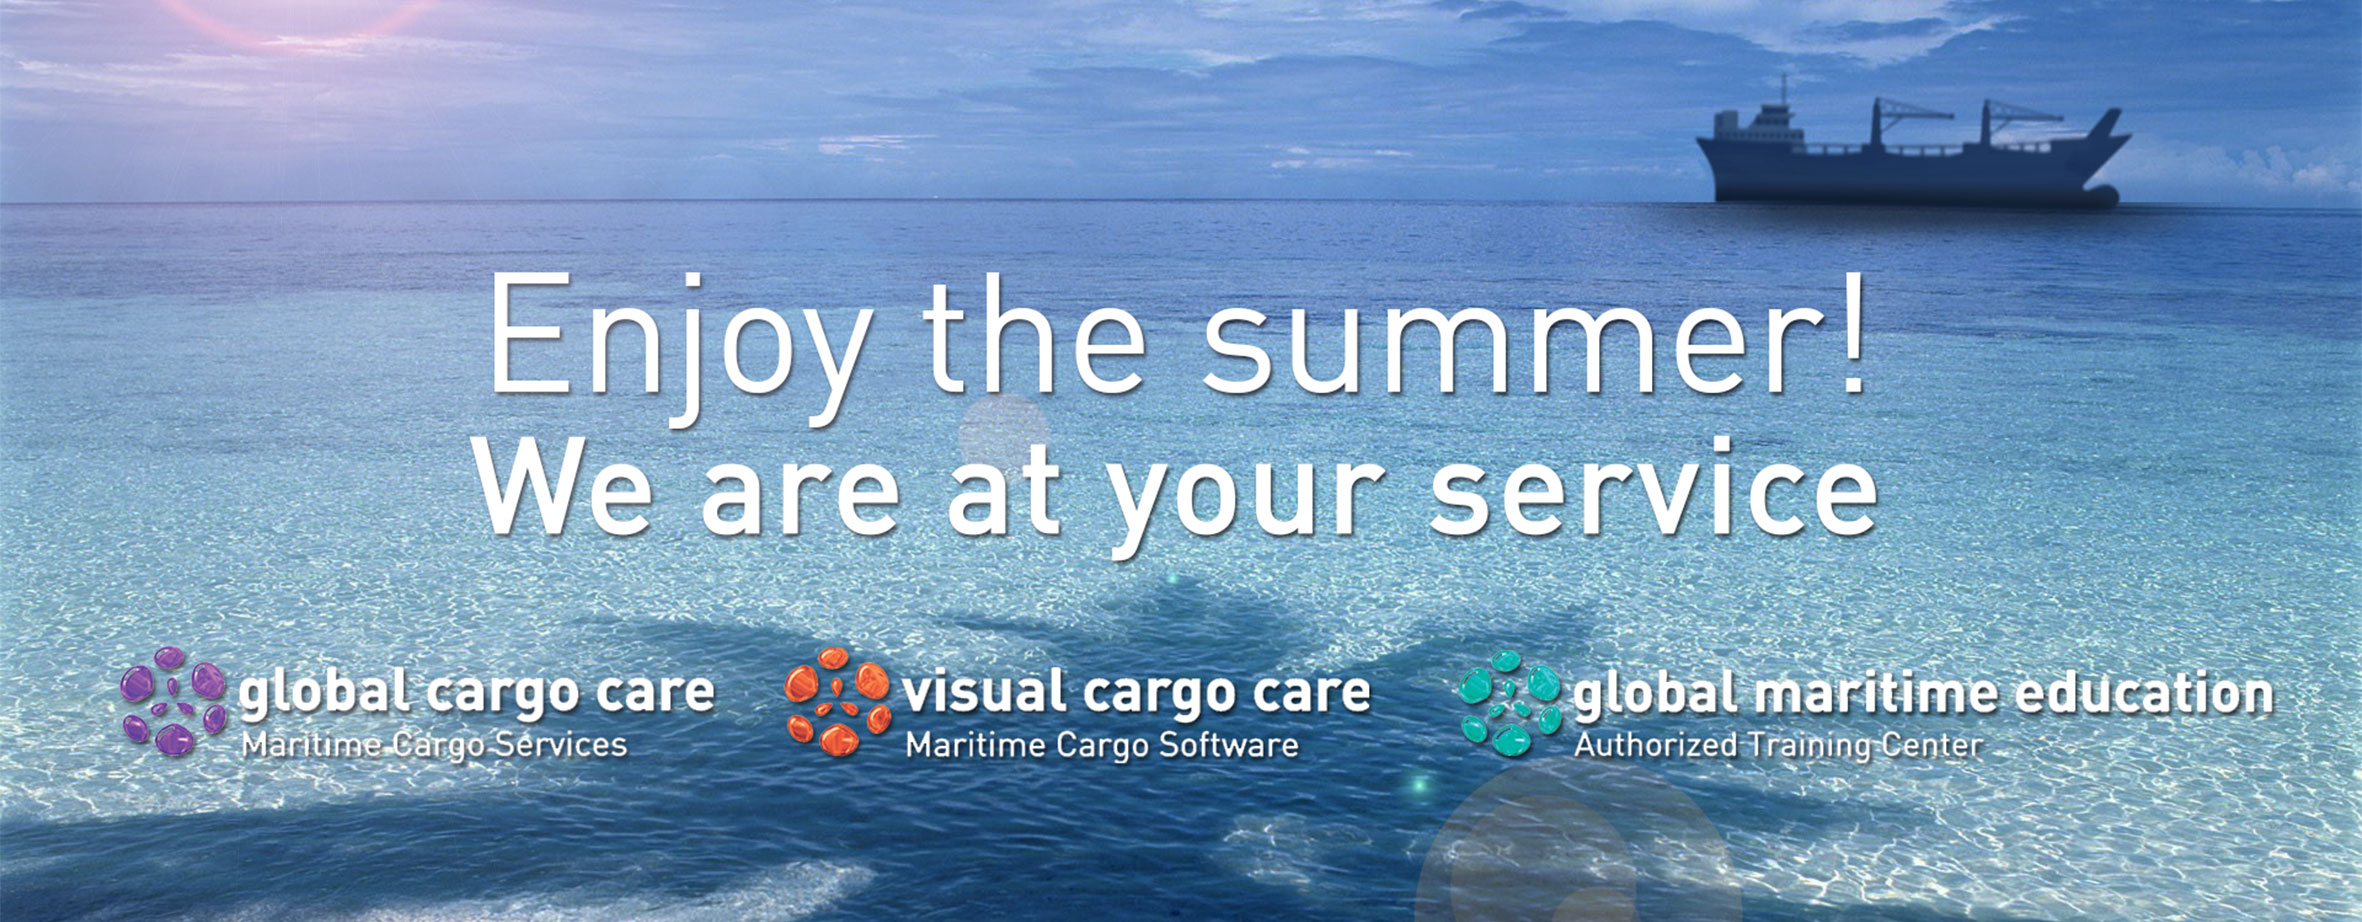 Our Global Cargo Care team is available for you during the summer!   We are available for all services in the heavy lift & project cargo industry: